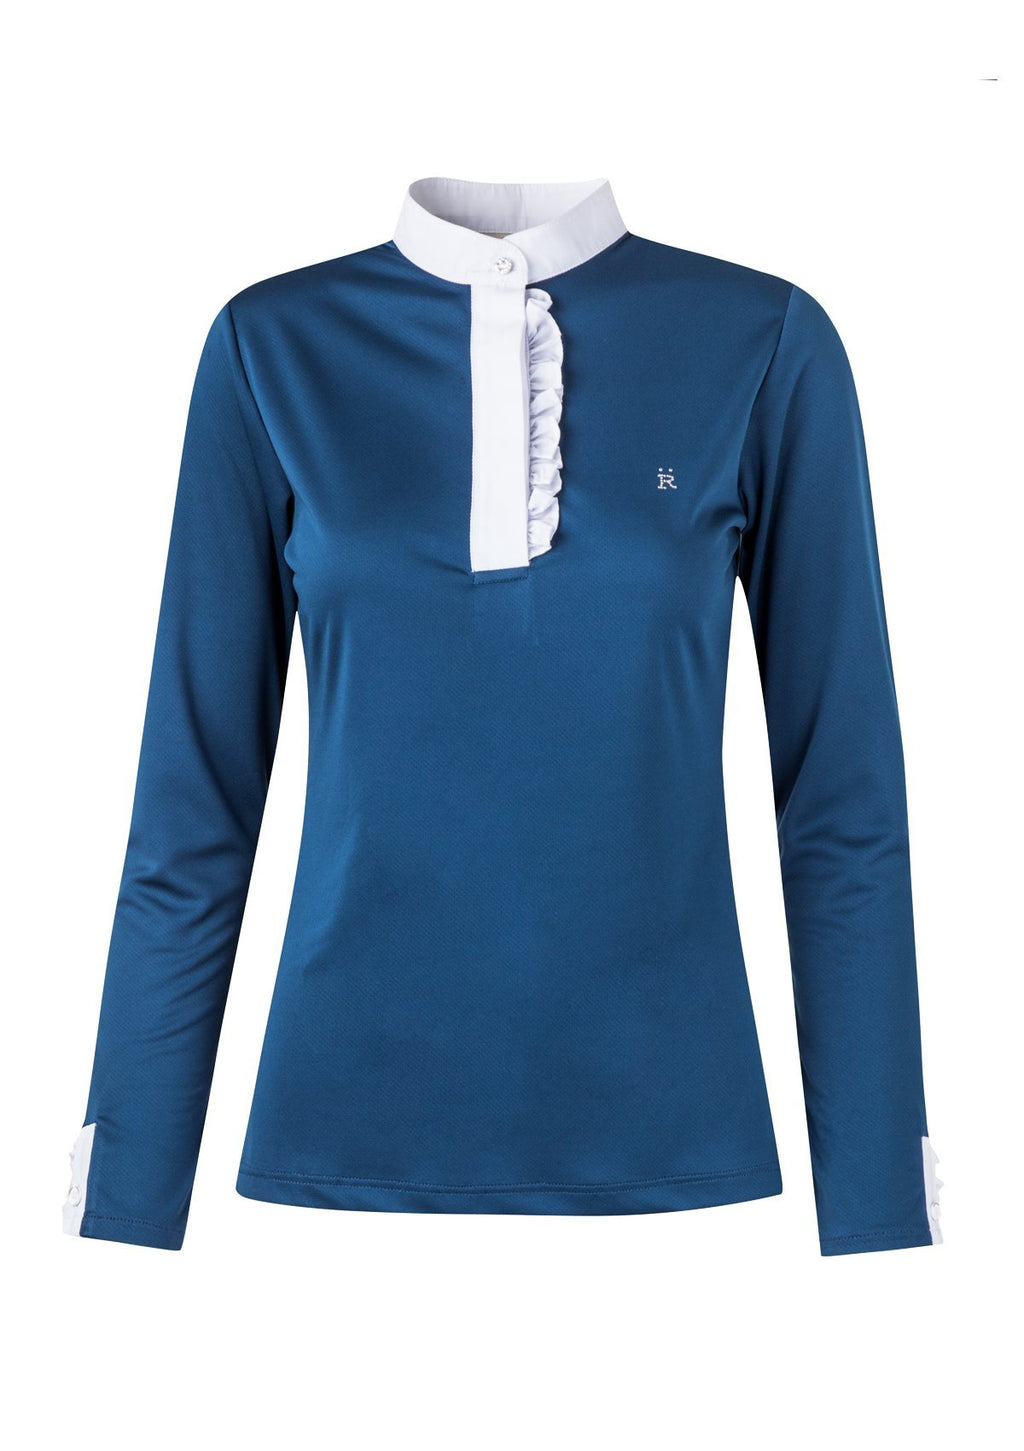 Ronner Show Shirt - Bianca - The Dressage Store